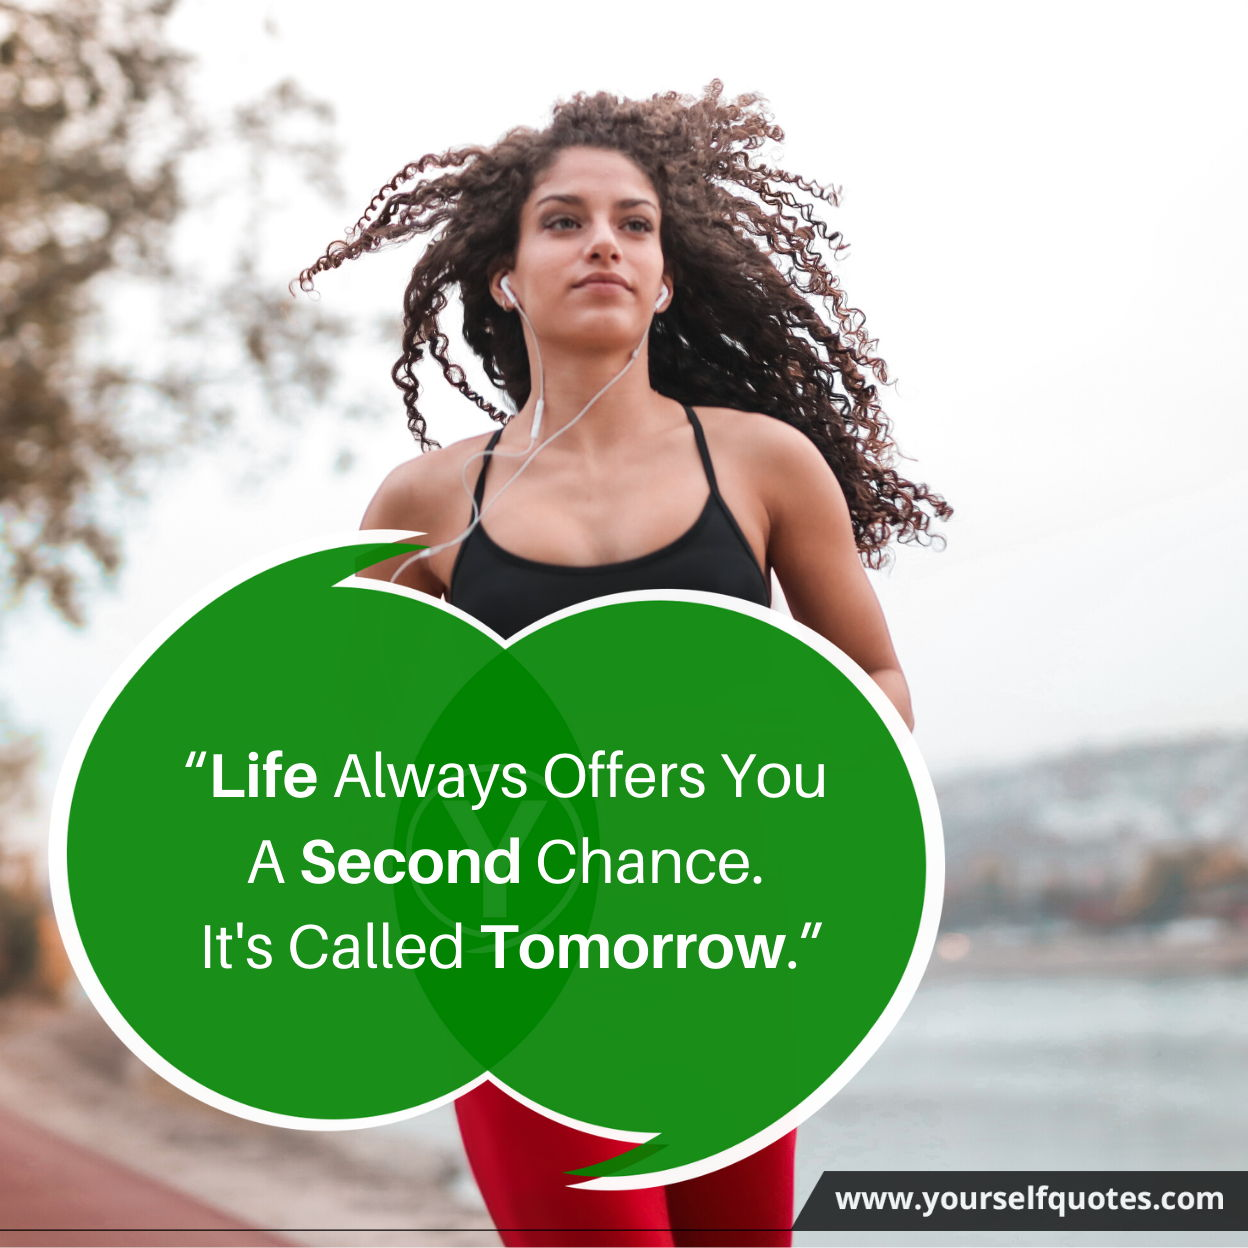 Quote Of The Day Images15